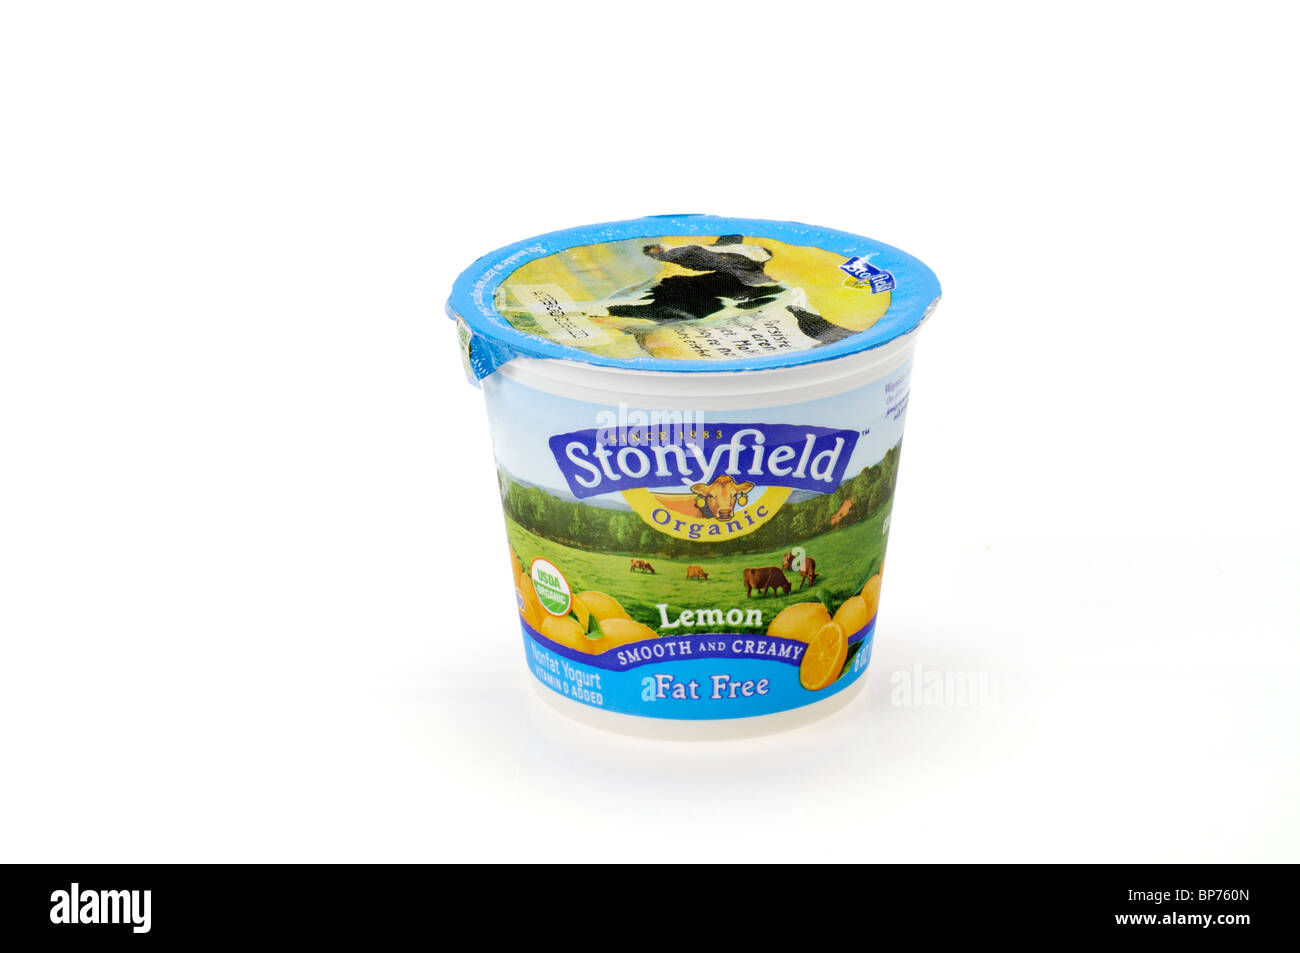 Unopened single container of Stonyfield Organic Lemon Non-Fat Yogurt on white background. Cut out. Stock Photo